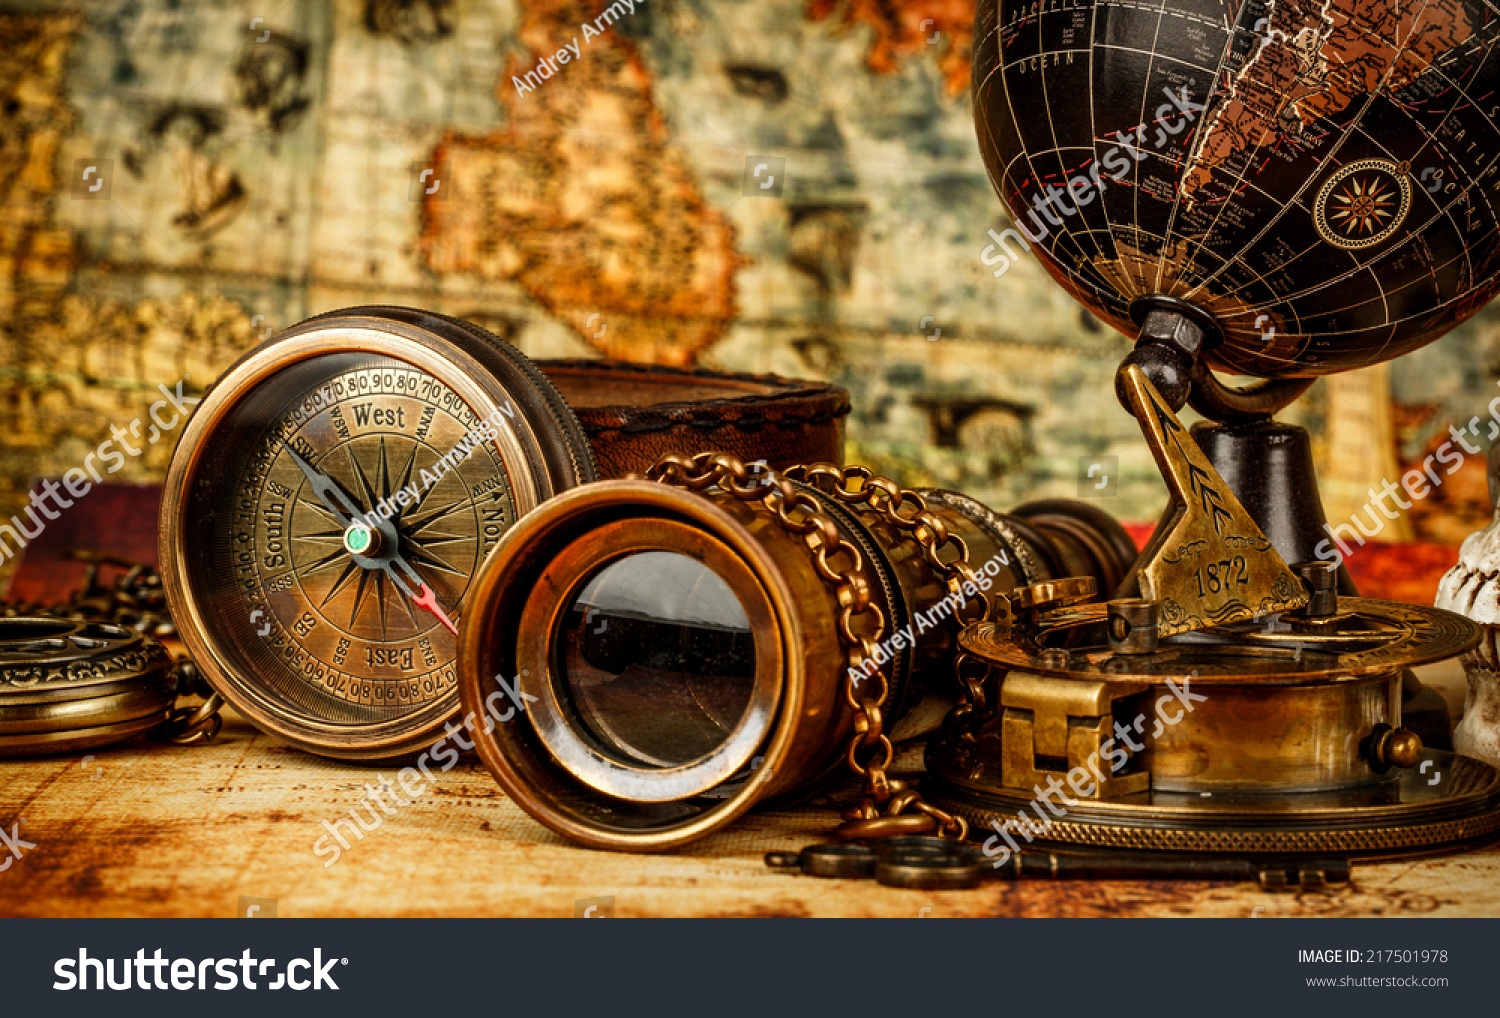 Vintage grunge still life vintage items stock photo for Imagenes retro vintage